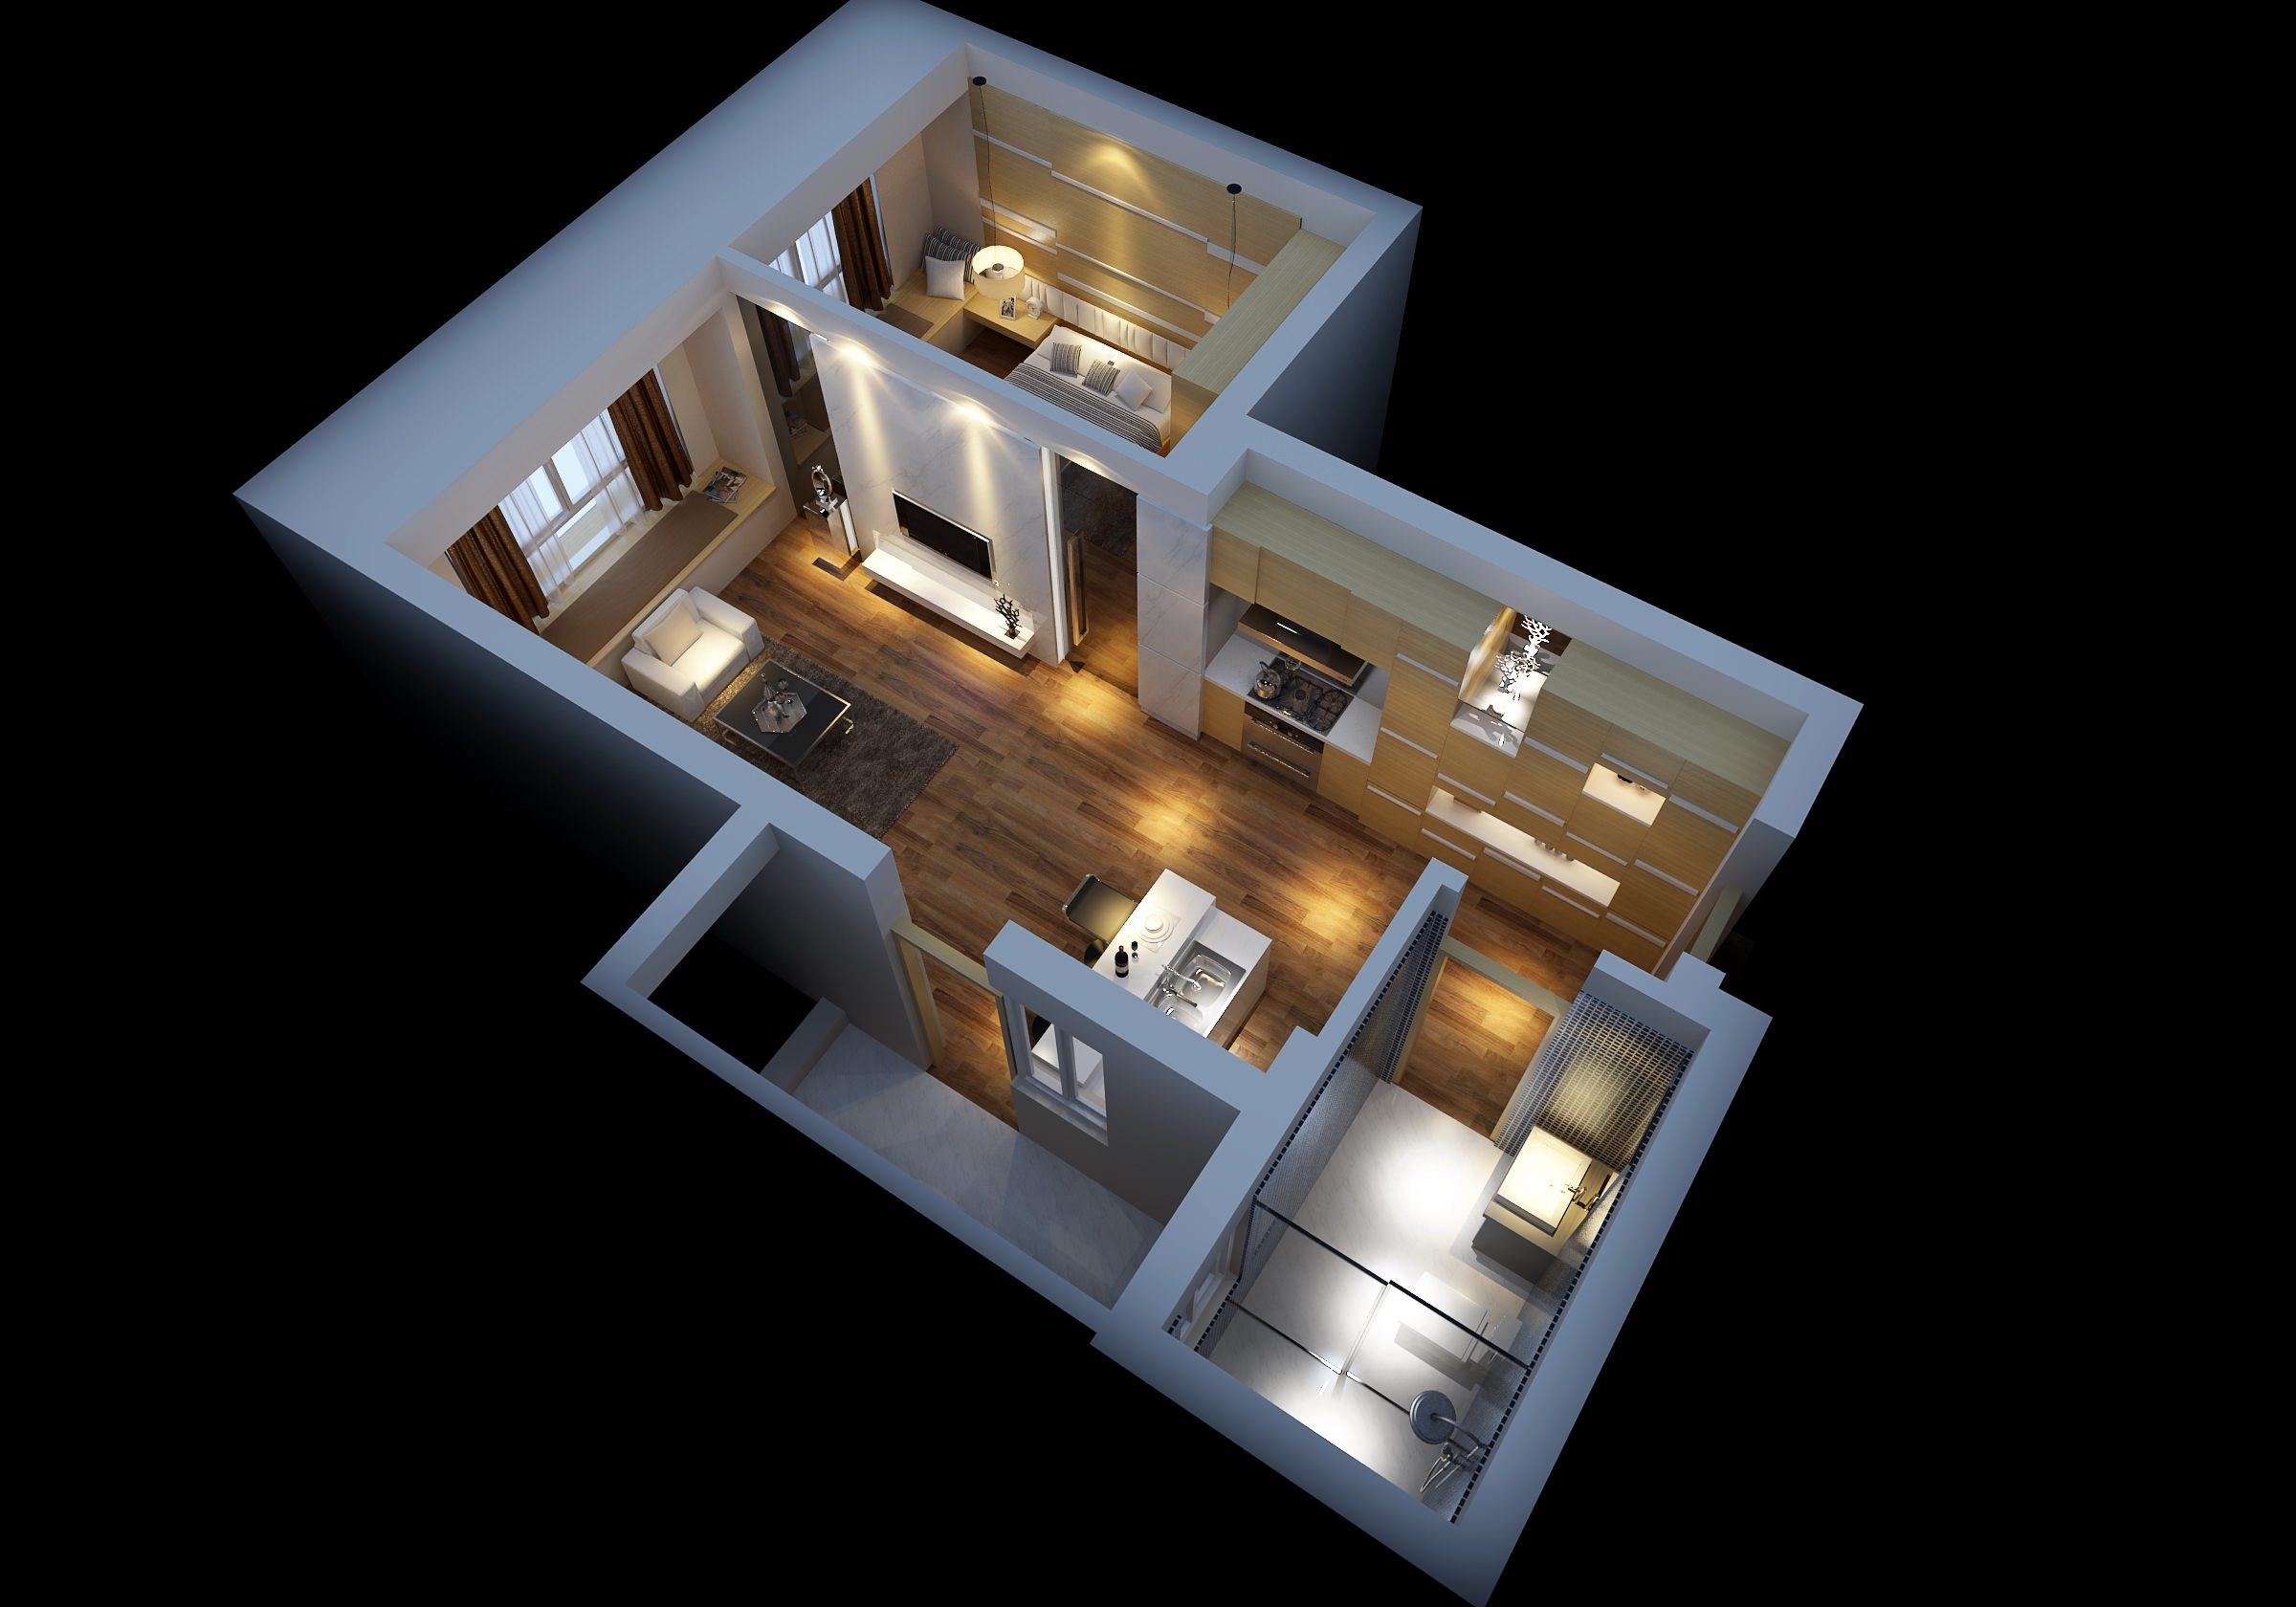 Modern house interior with wooden floor fu 3d model max 3d model house design